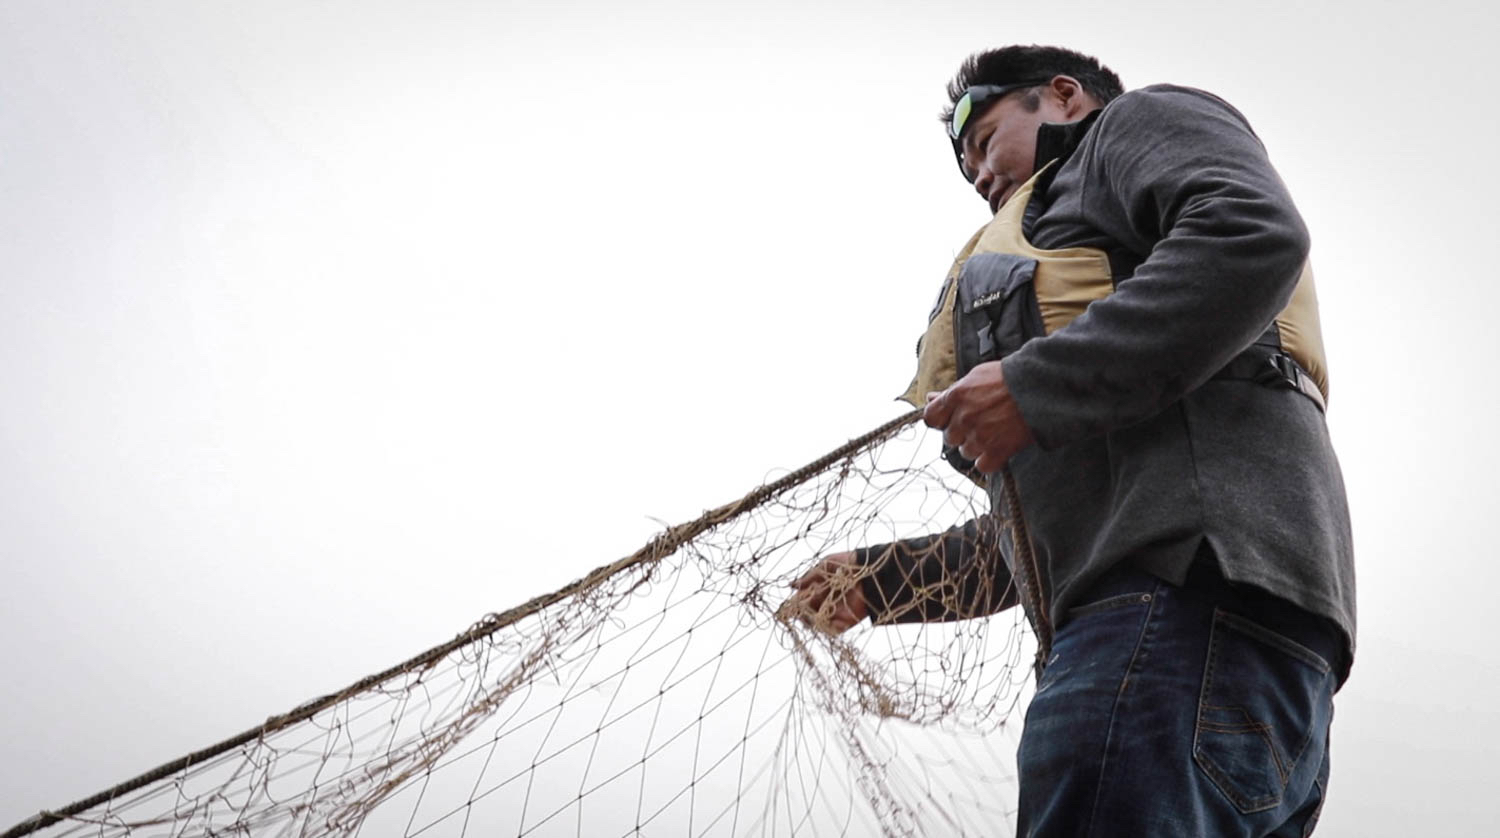 Robert Kyikavichik checks the fish nets for salmon along the Porcupine River. (Photo: Meral Jamal)